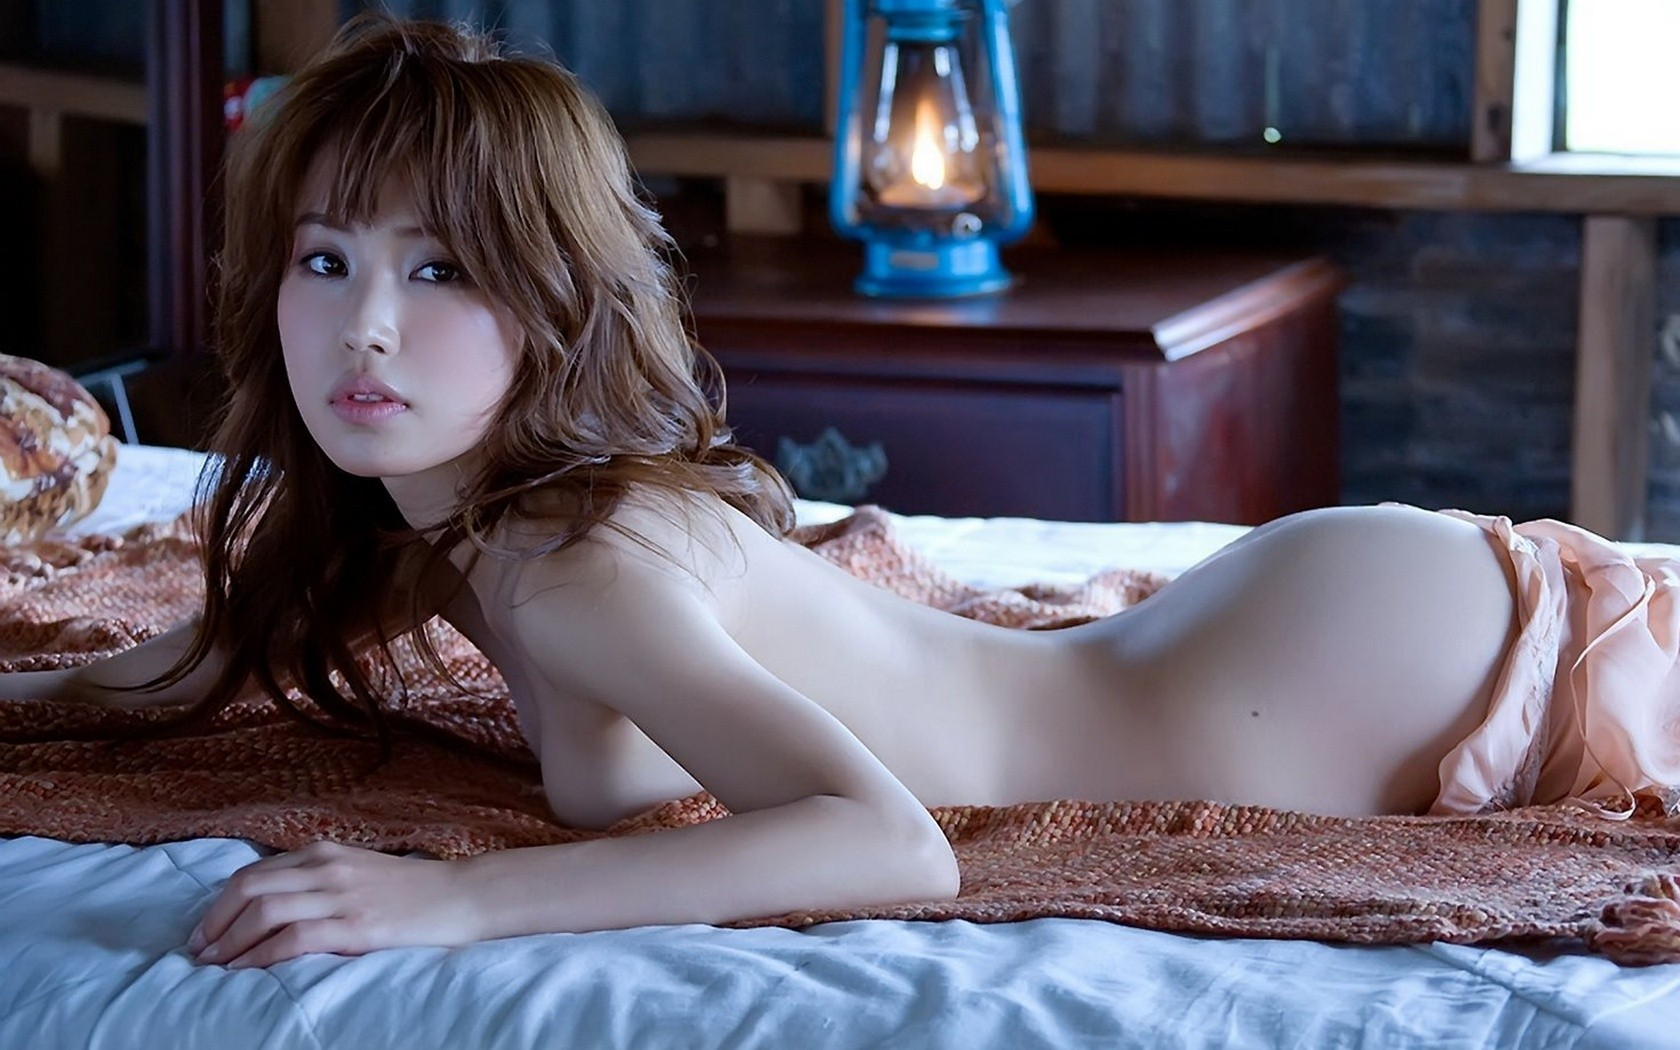 Girls porn japanese adult girl picture